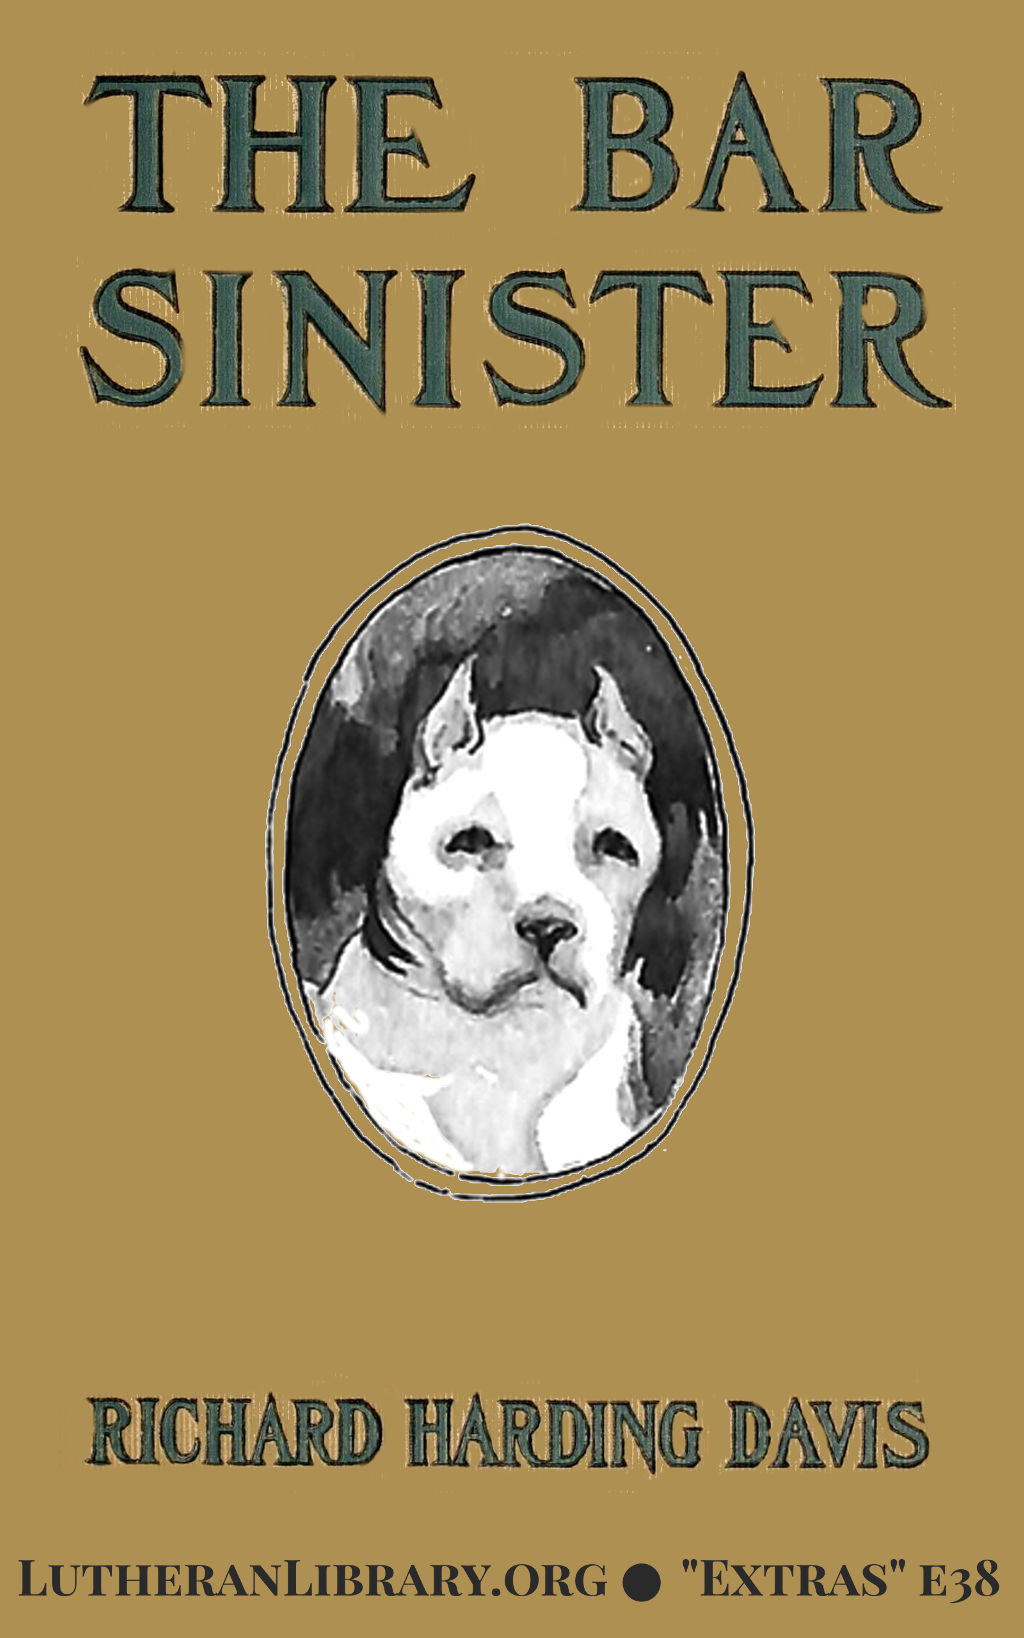 The Bar Sinister by Richard Harding Davis (1864-1916)